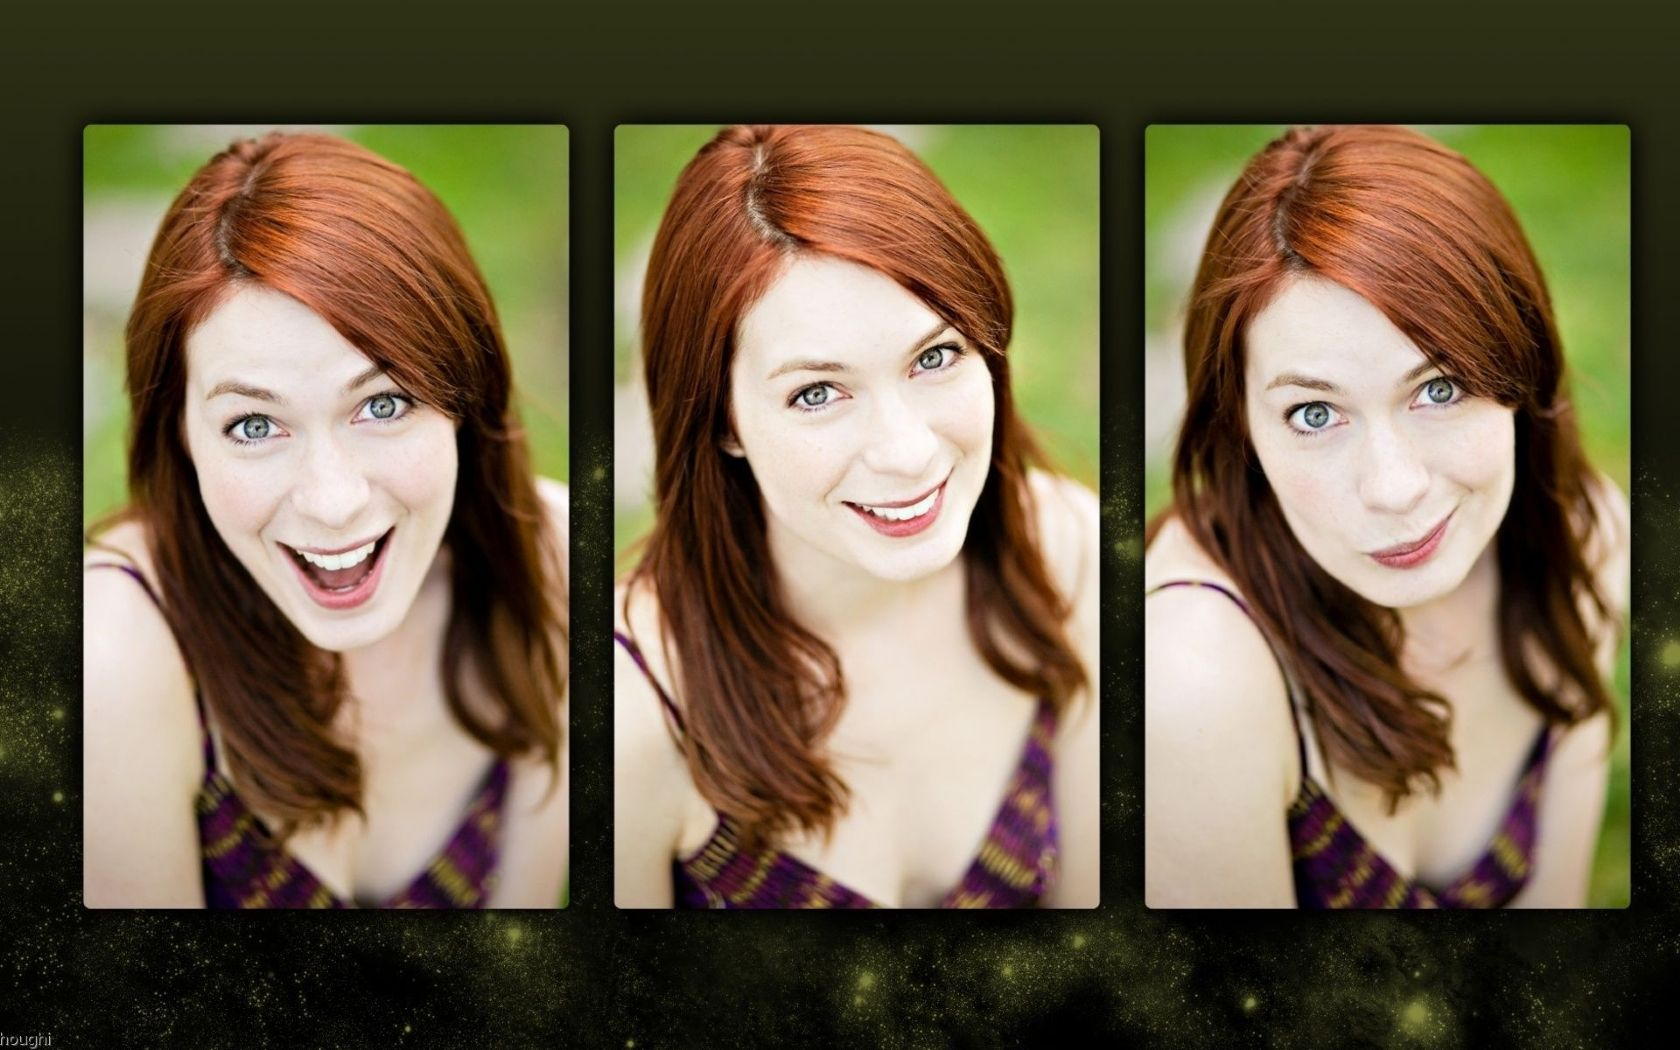 1680x1050 - Felicia Day Wallpapers 29